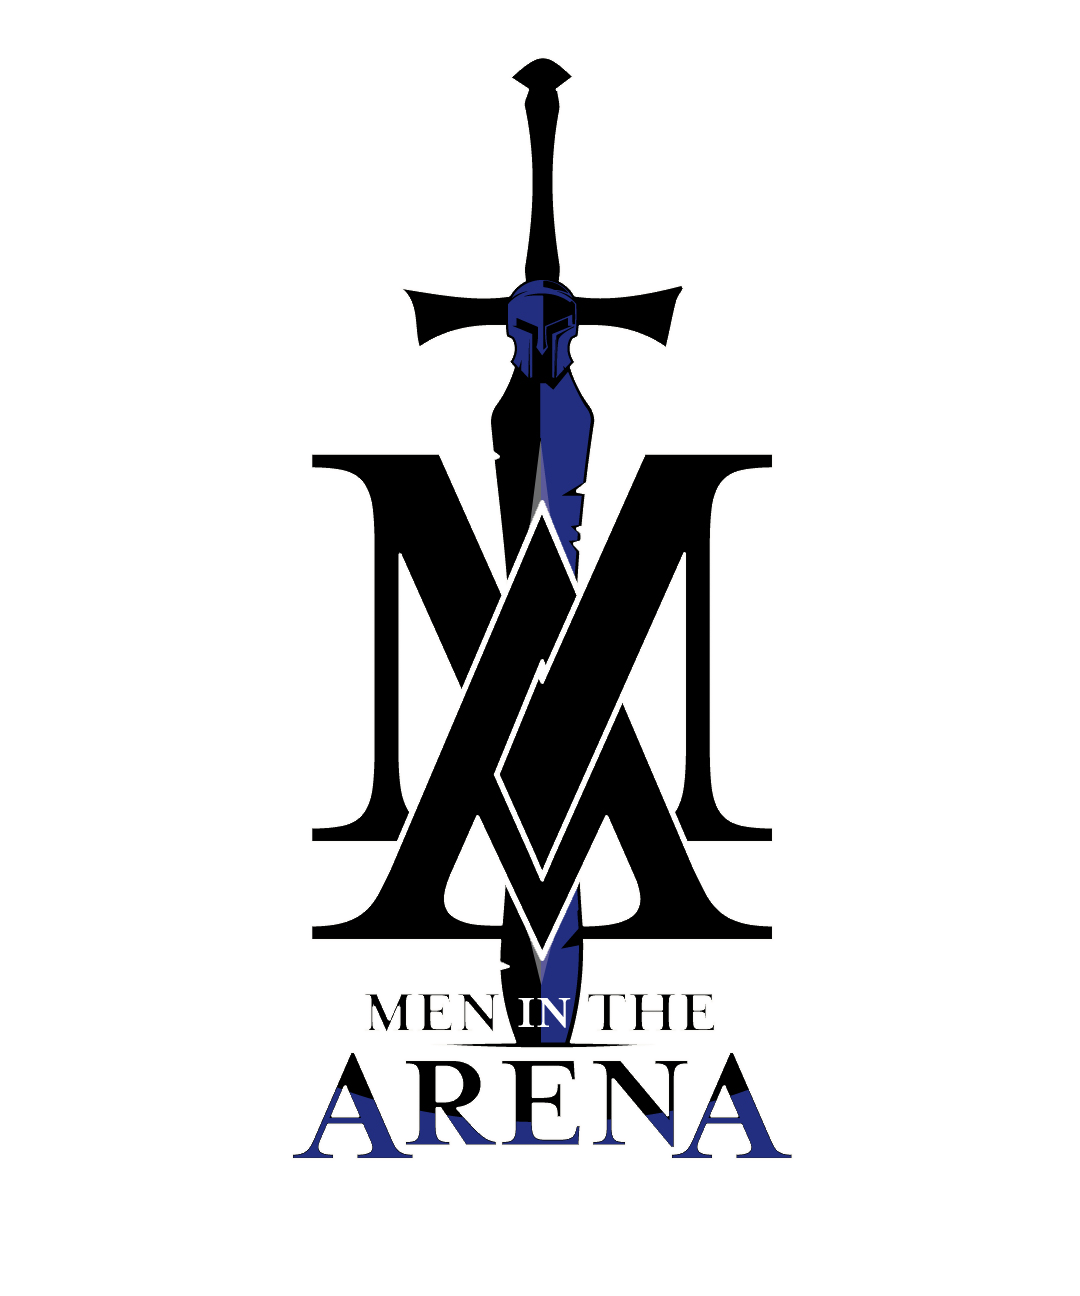 The Men in the Arena